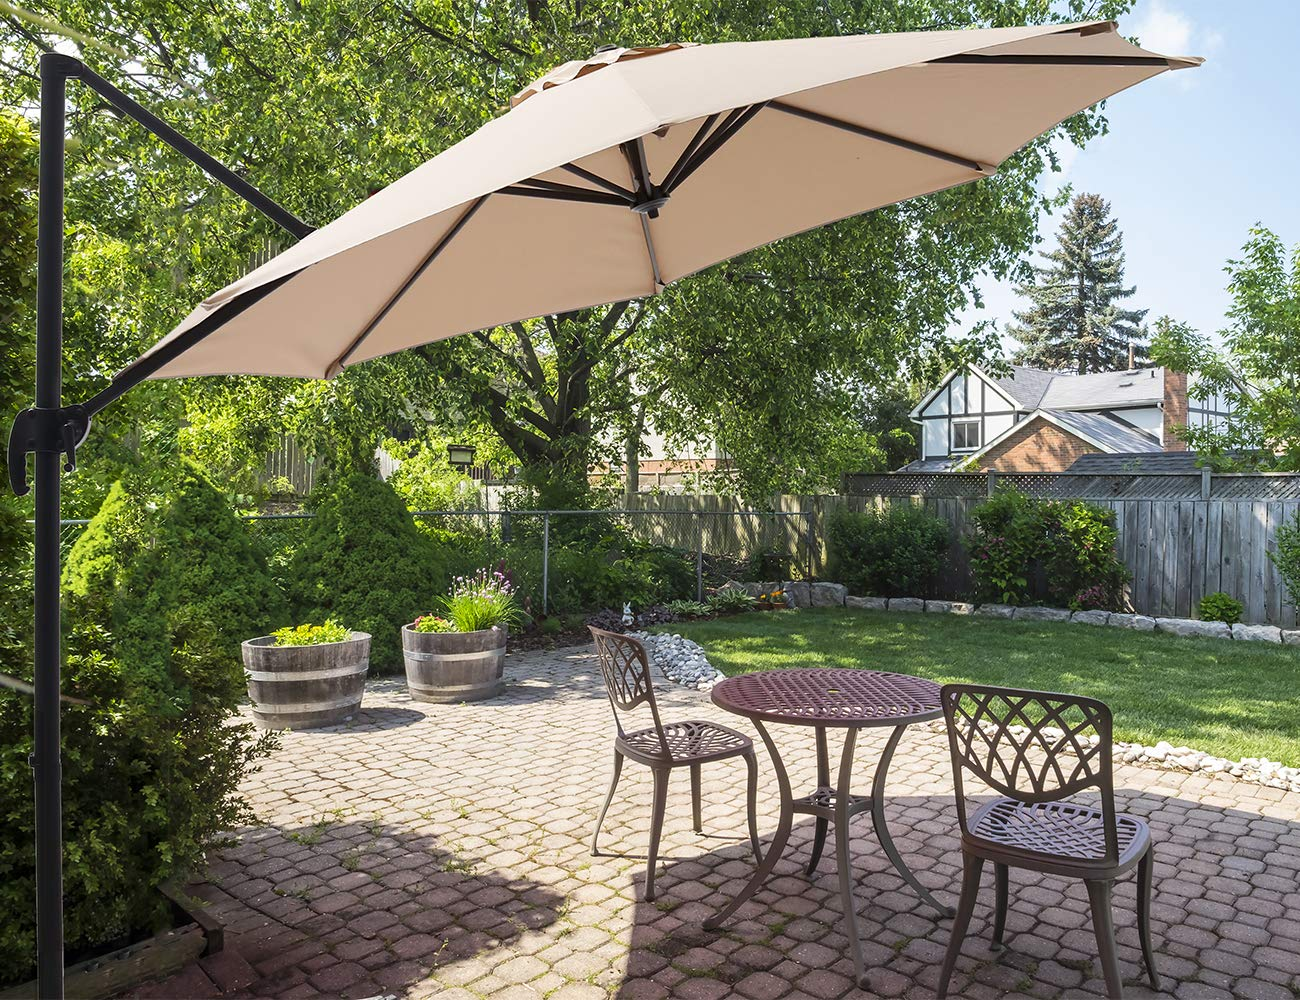 SUPERJARE 10 FT Offset Hanging Umbrella, Outdoor Patio Cantilever with Tilt Canopy, Crank Lift 5 Lock Positions, 360 Rotation – Beige